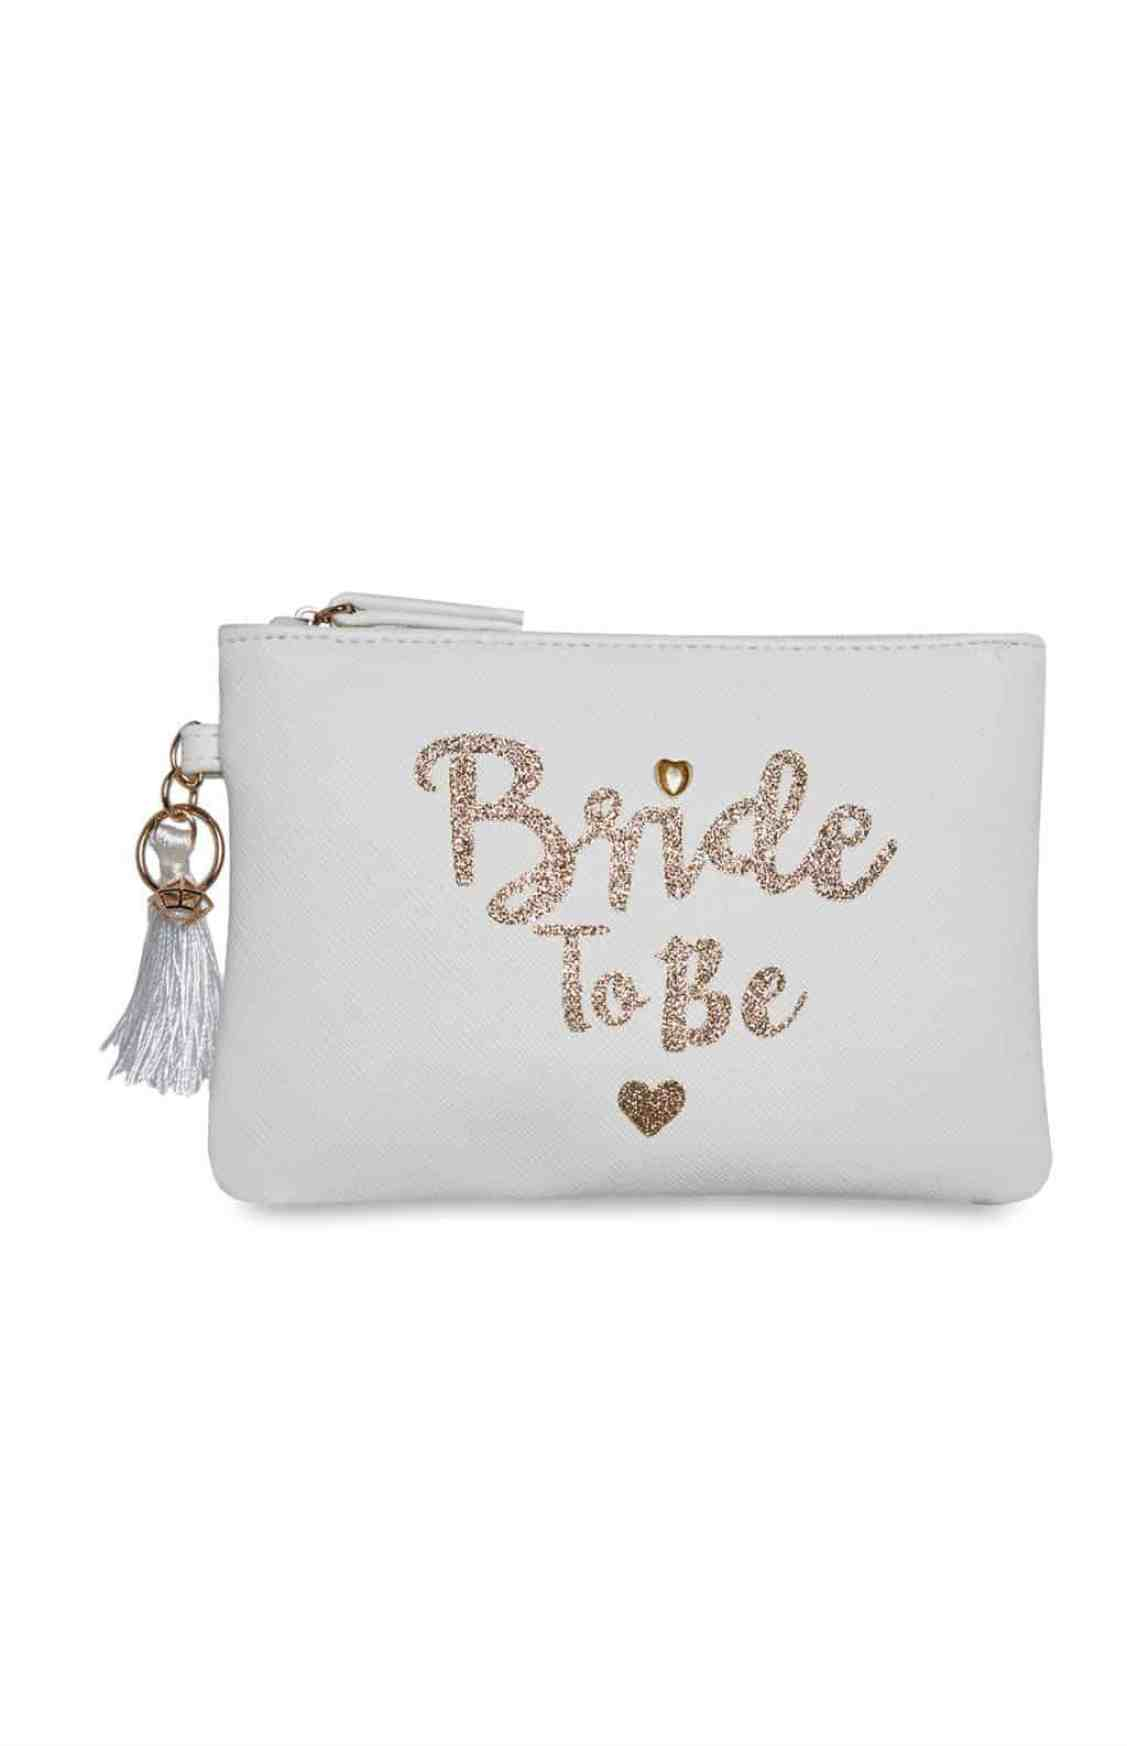 primark bride to be purse